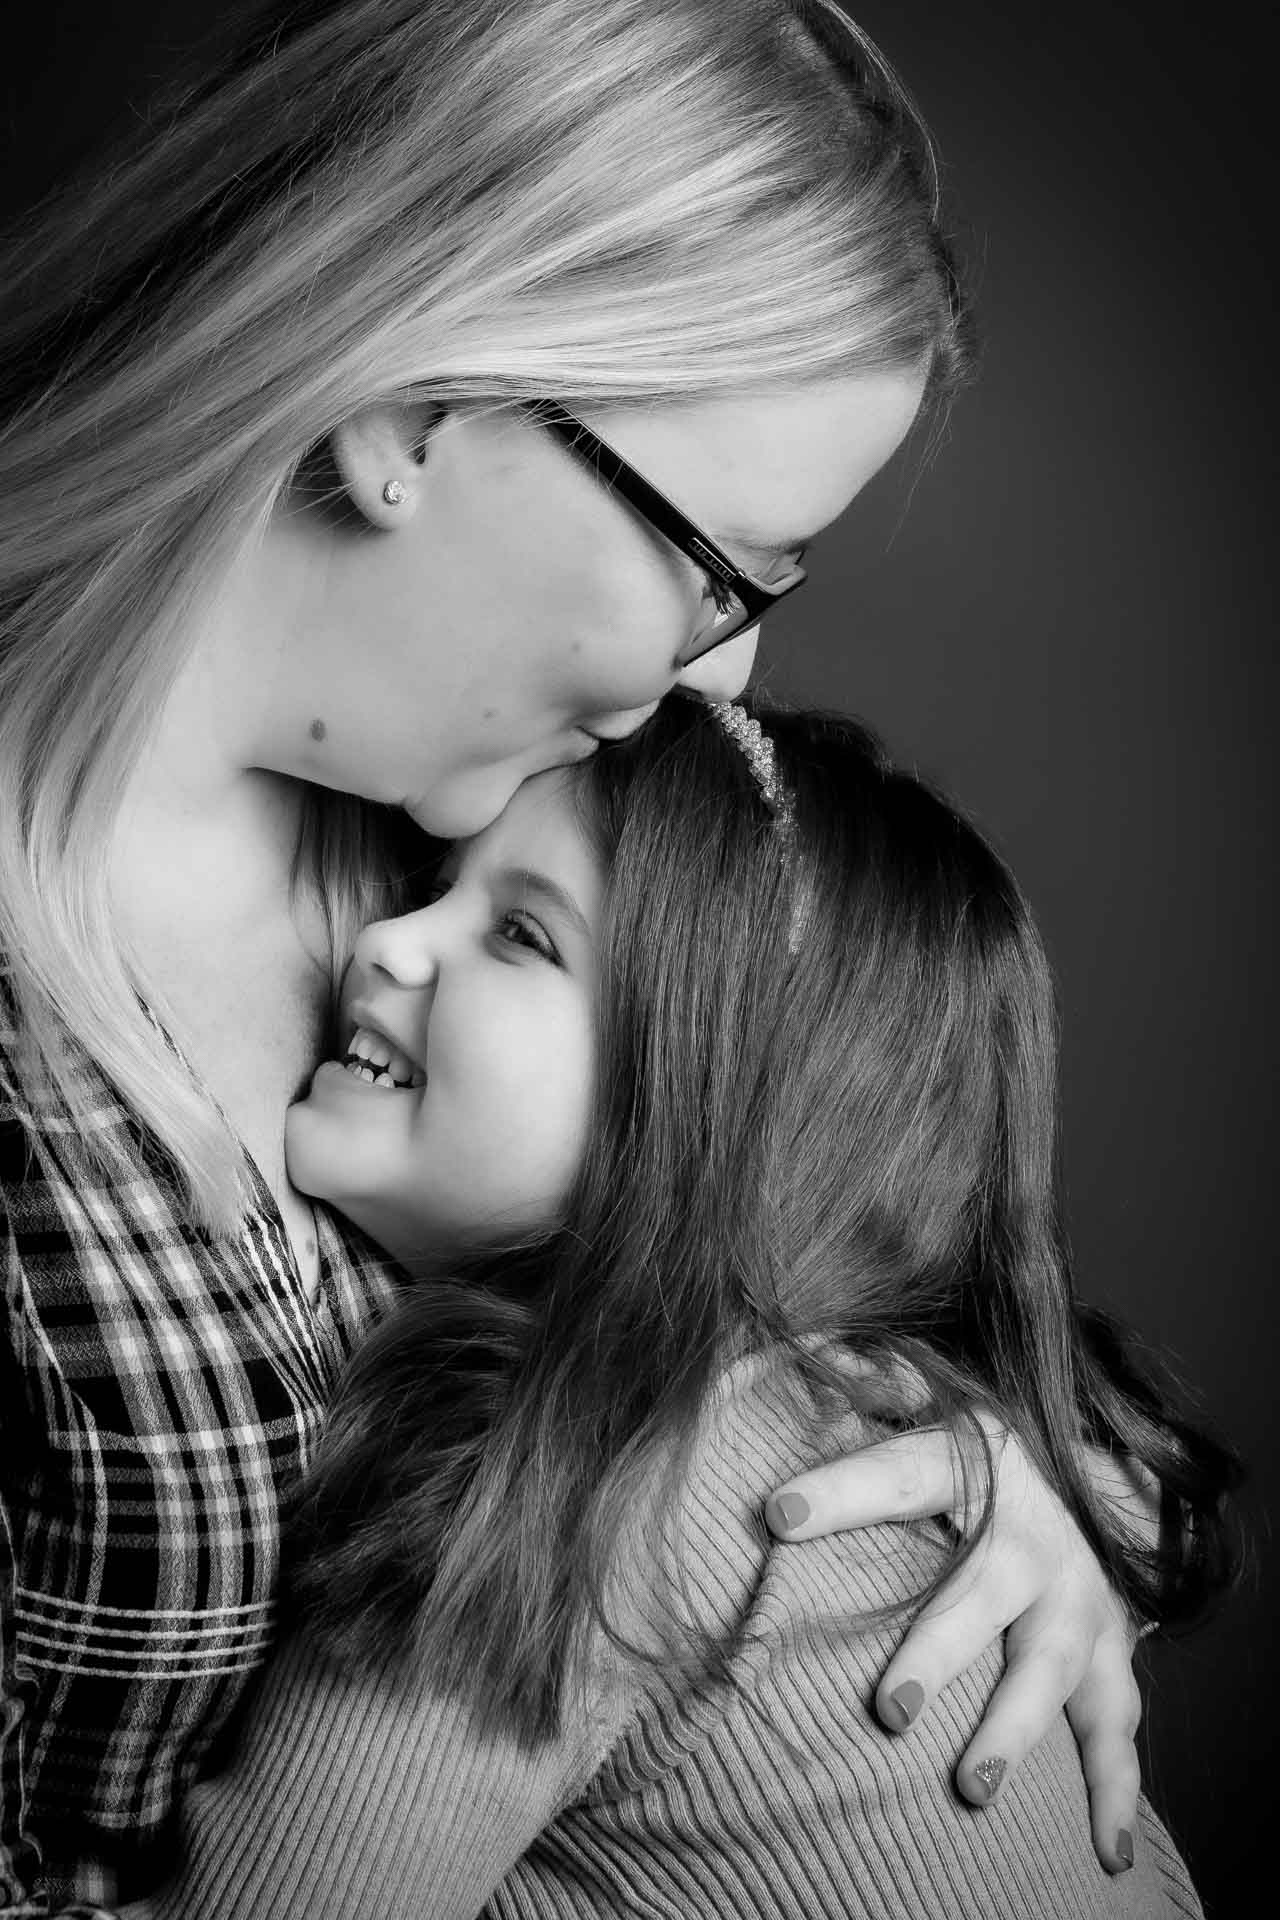 mother and daughter portrait photograph